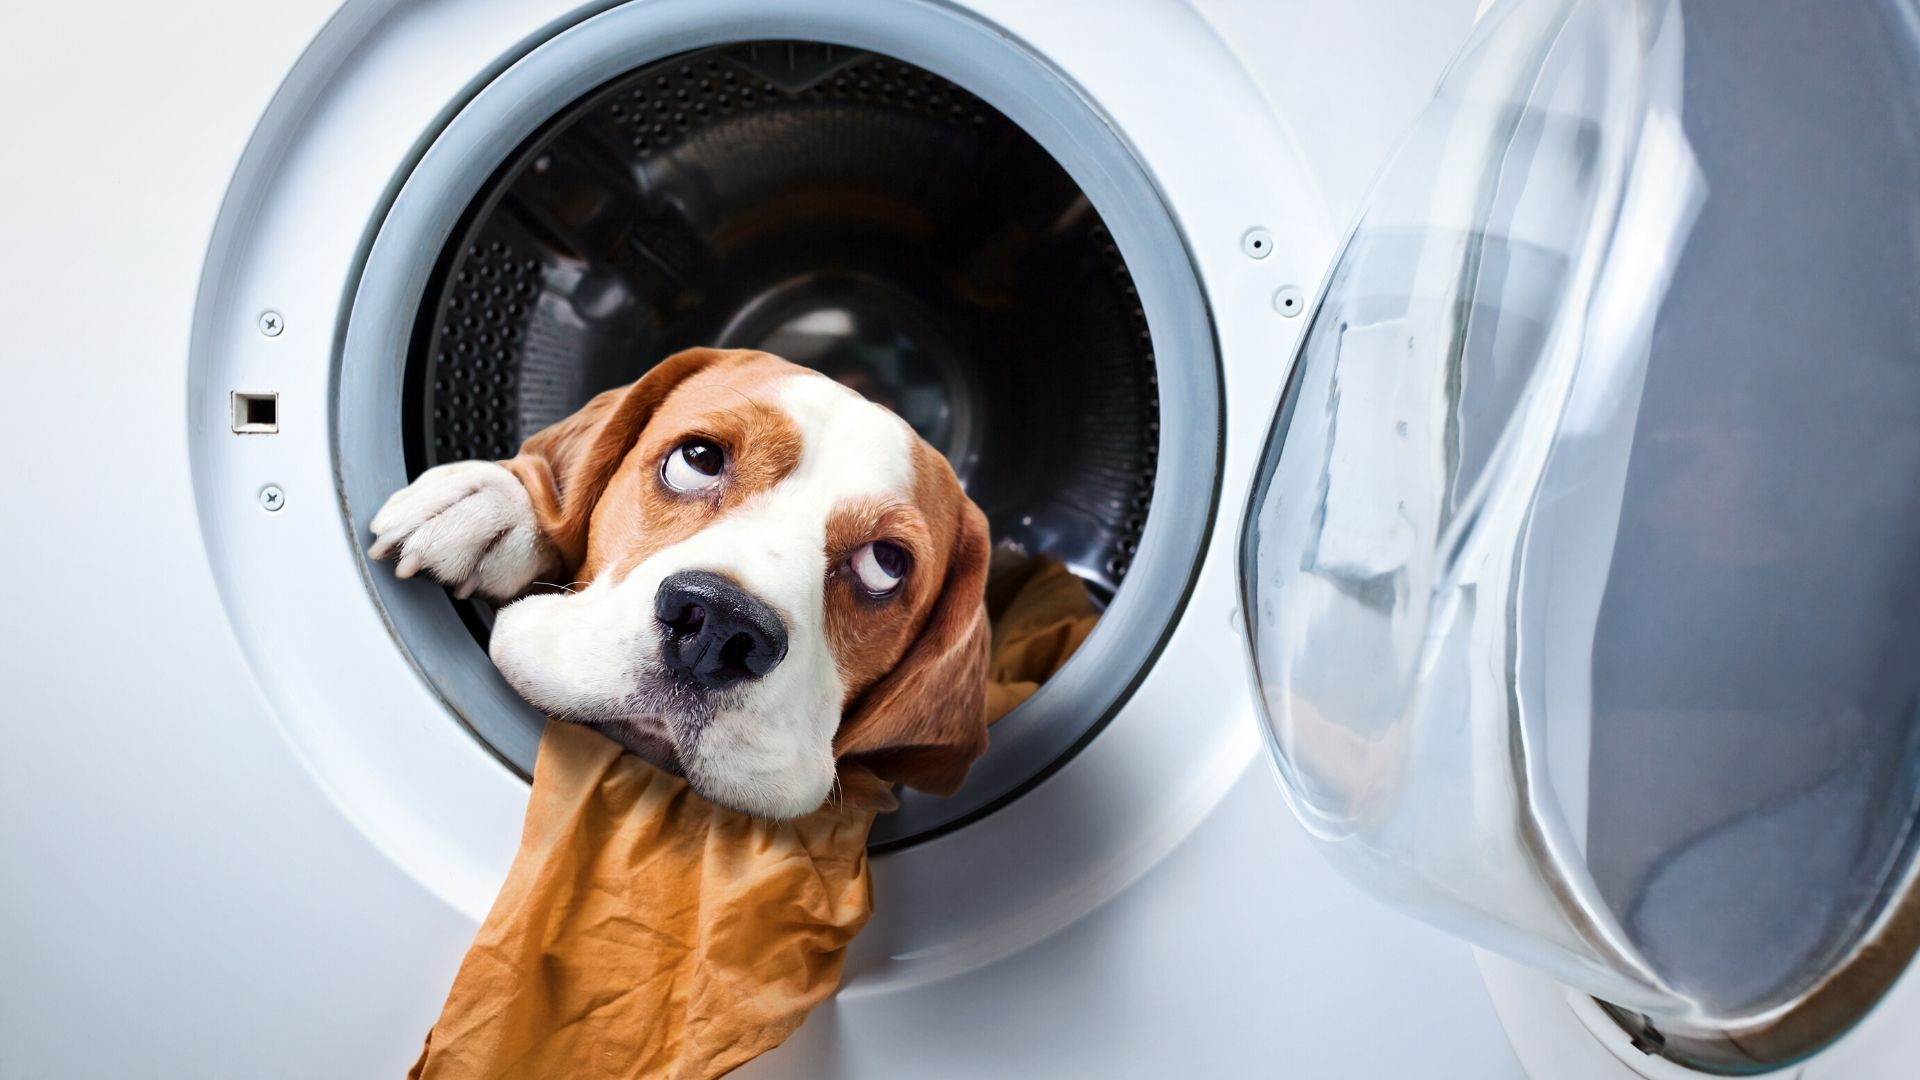 The Old Cycle Dog in a washing machine